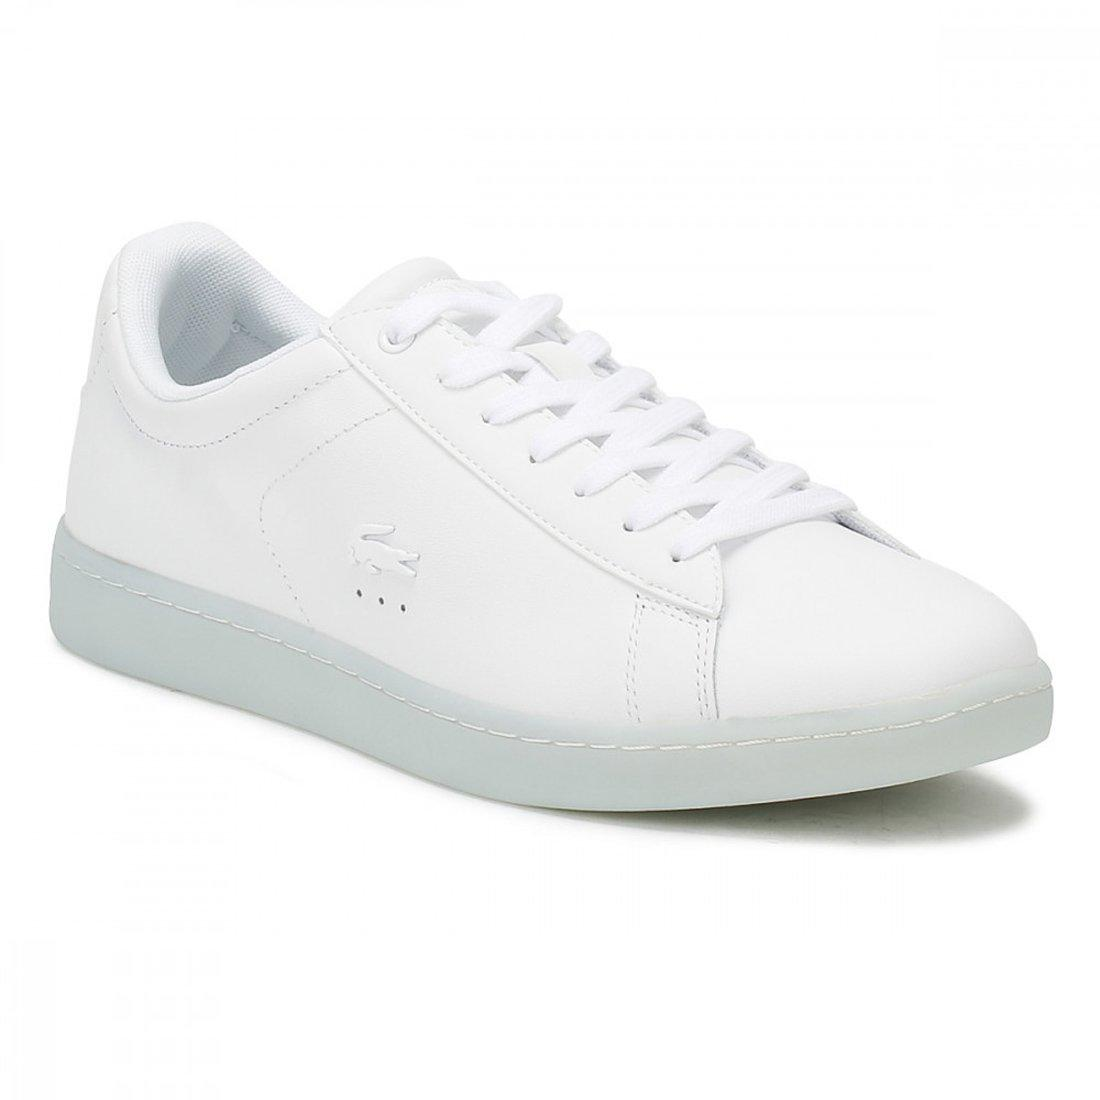 f0bd6931 Lacoste Carnaby Evo 118 3 in White - Save 42% - Lyst